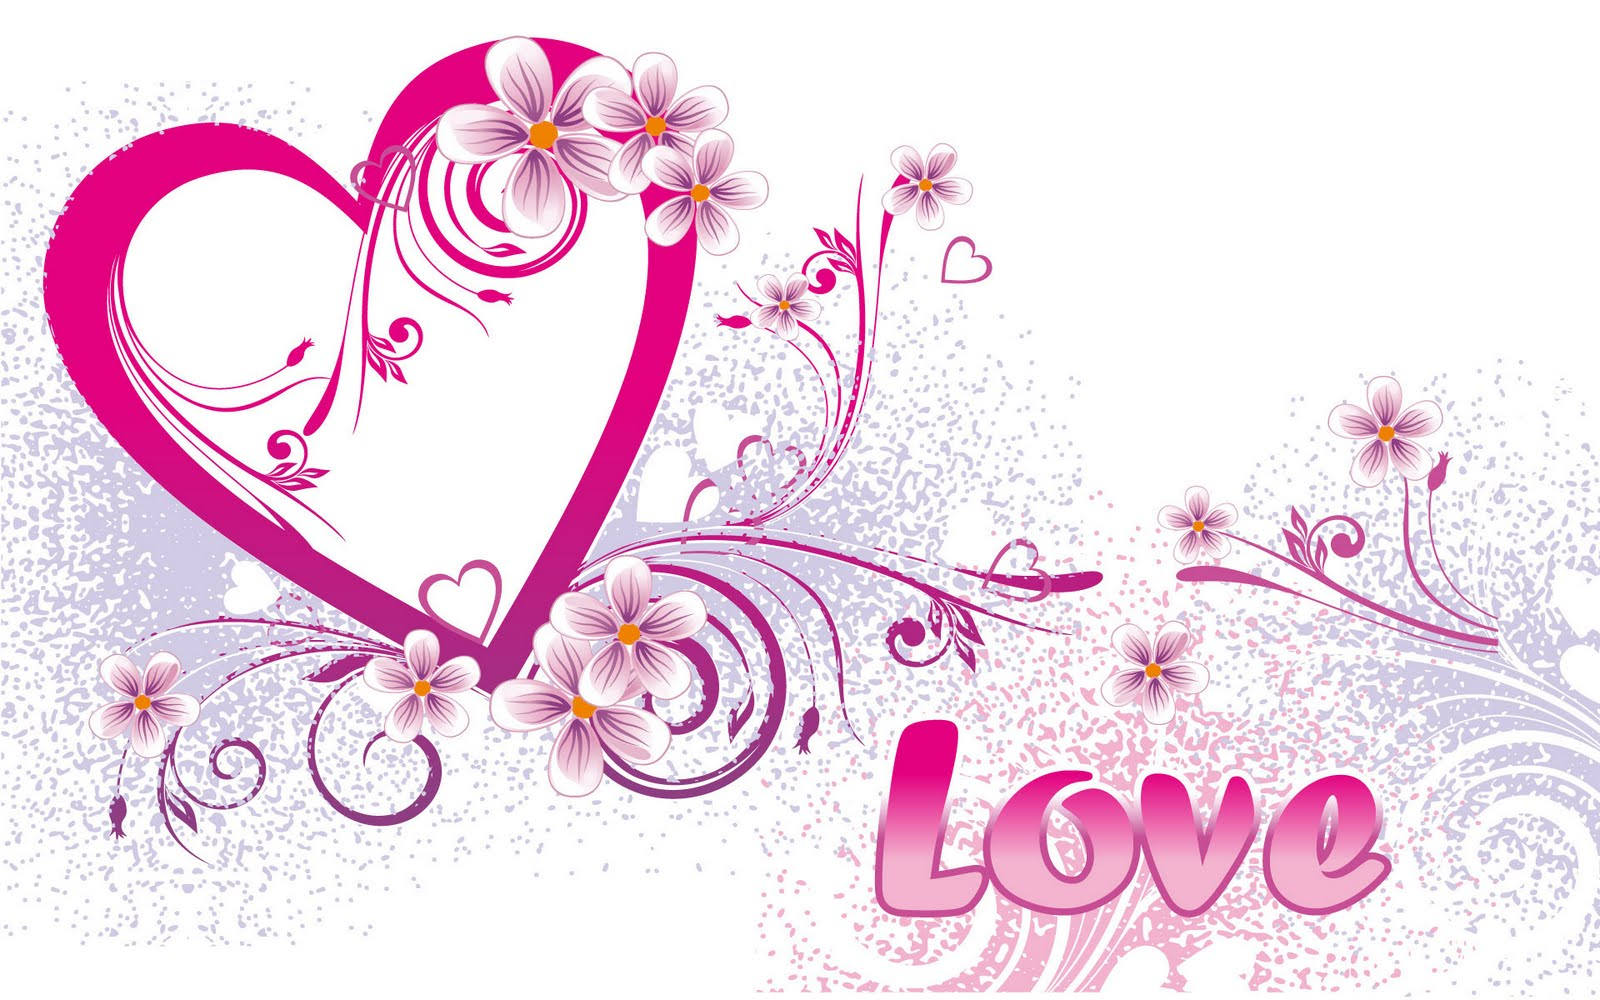 WEB-WALLPAPERS-PK: Love Wallpapers